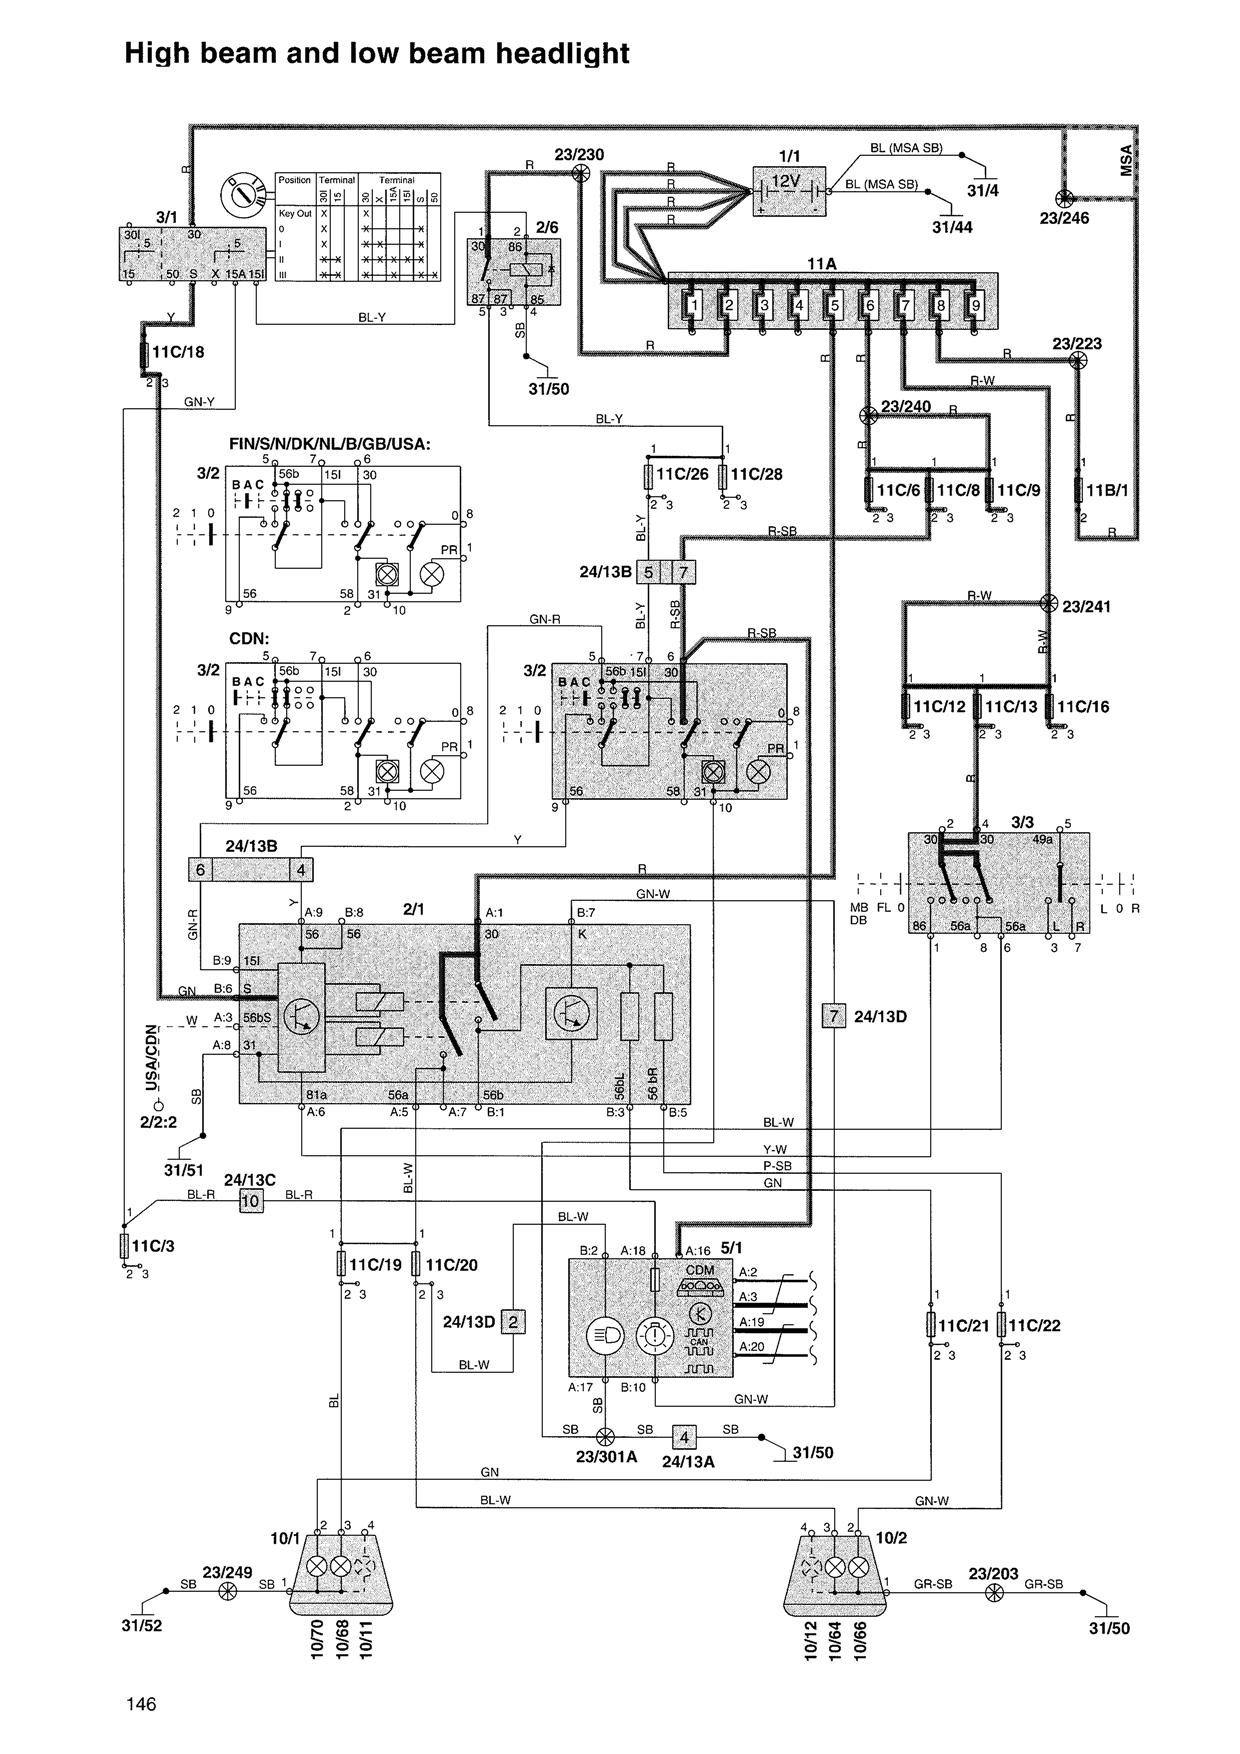 Cool volvo s60 wiring diagram ideas the best electrical circuit mesmerizing volvo s60 radio wiring diagram ideas best image asfbconference2016 Images